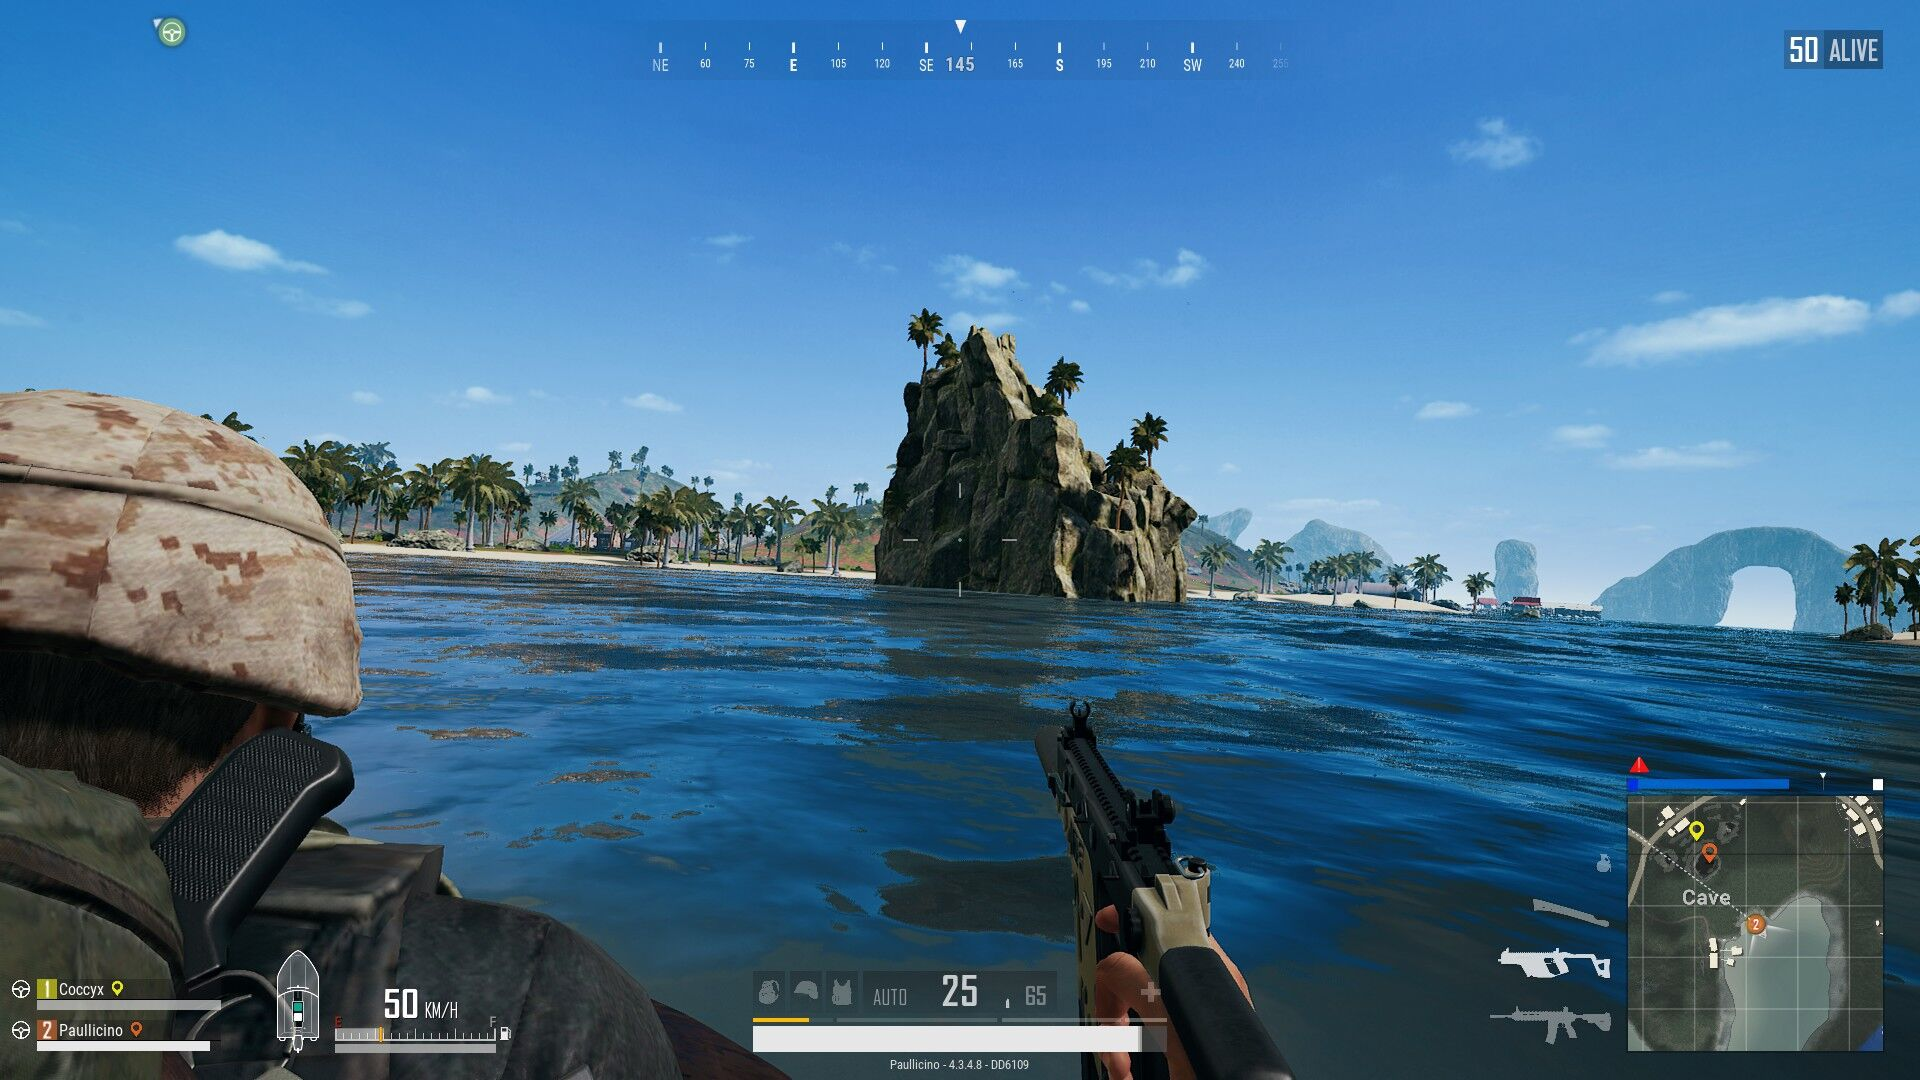 The player is riding a motorbike in the ocean that surrounds Sanhok.